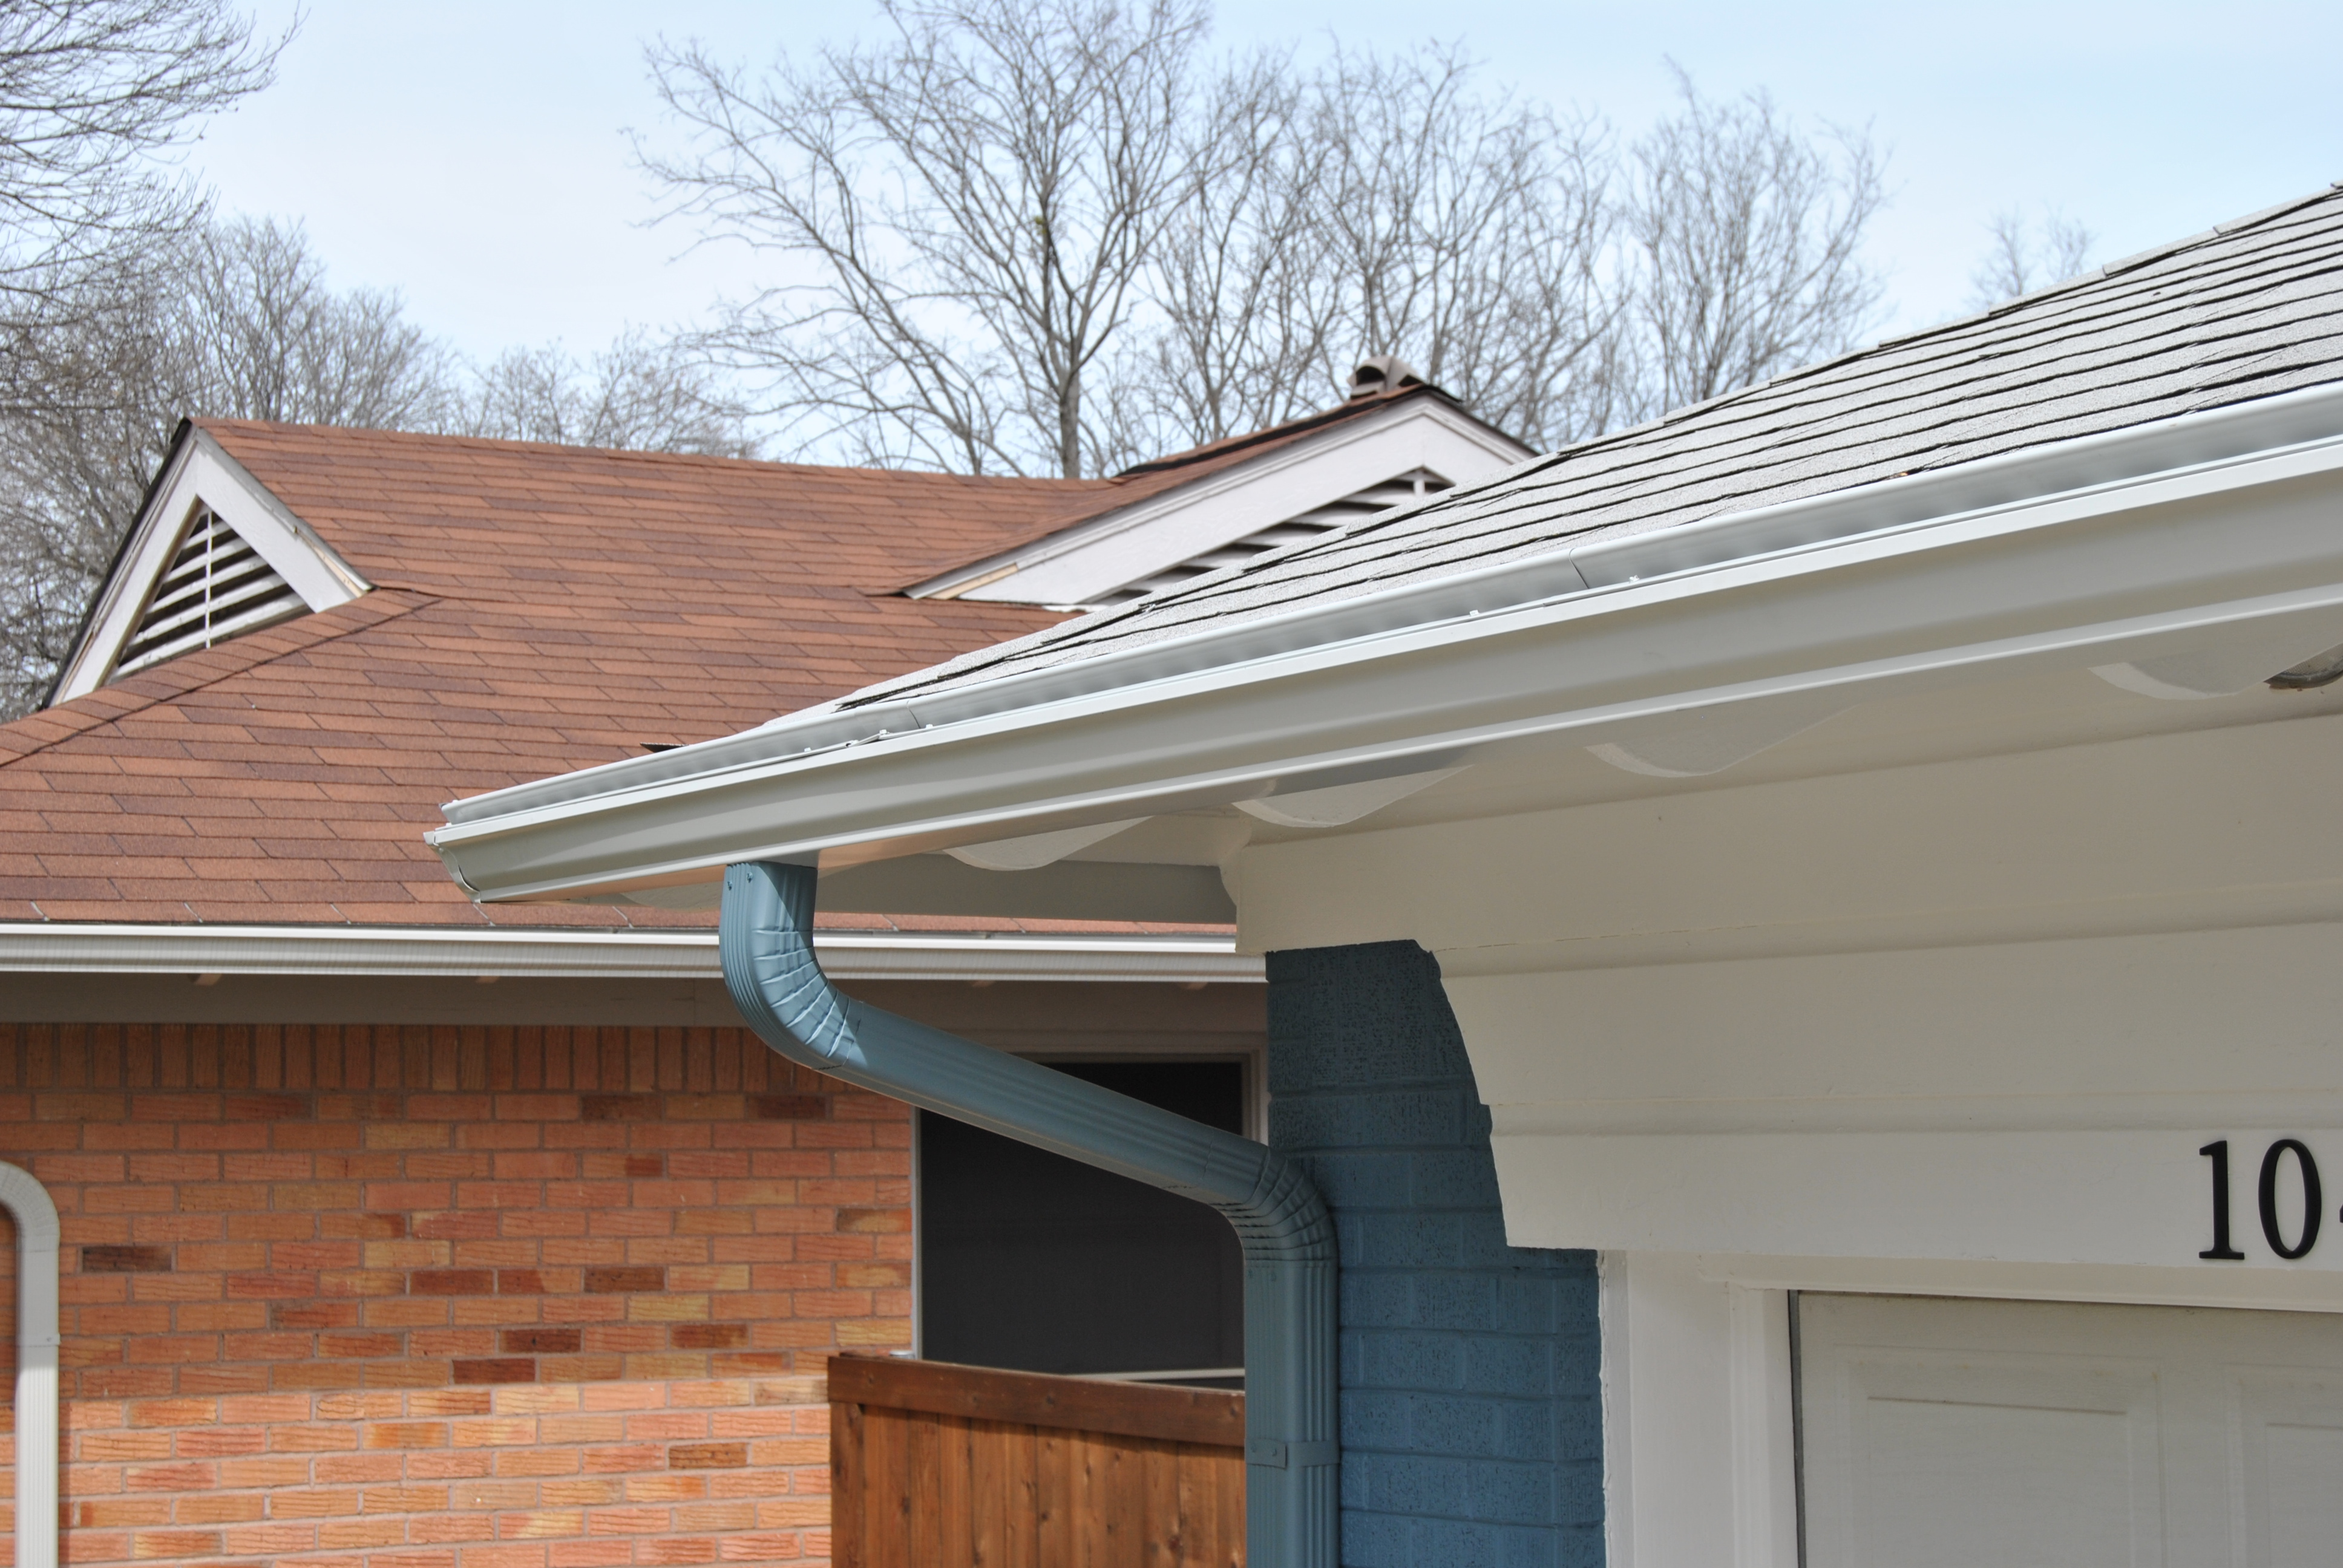 Guttering installation sales and service.  Seamless guttering repair.  Gutter covers and screens options.